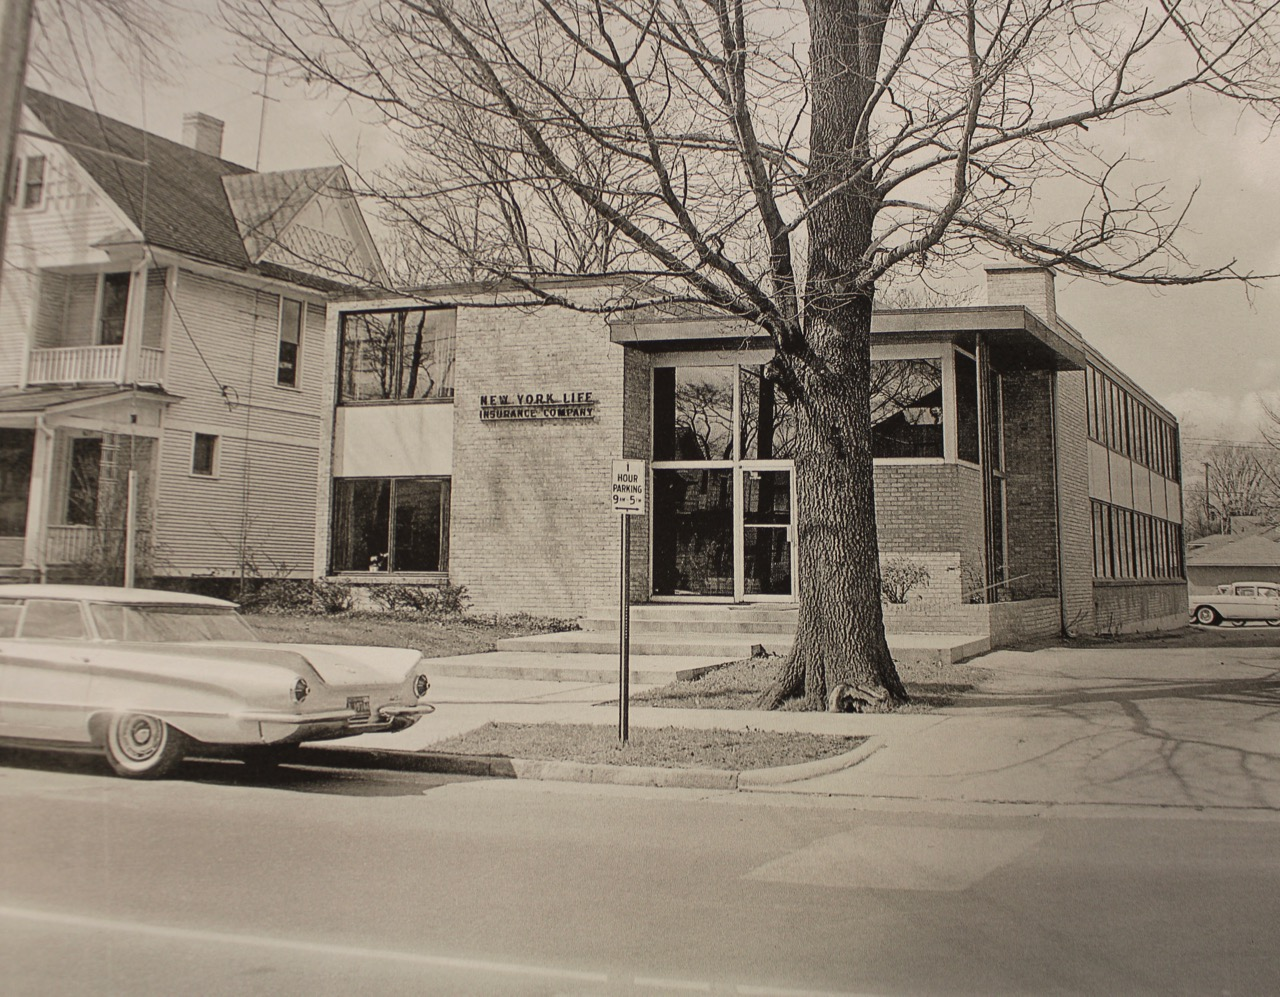 645 Cherry SE, Grand Rapids, Michigan | Photo courtesy of the Grand Rapids City Archives